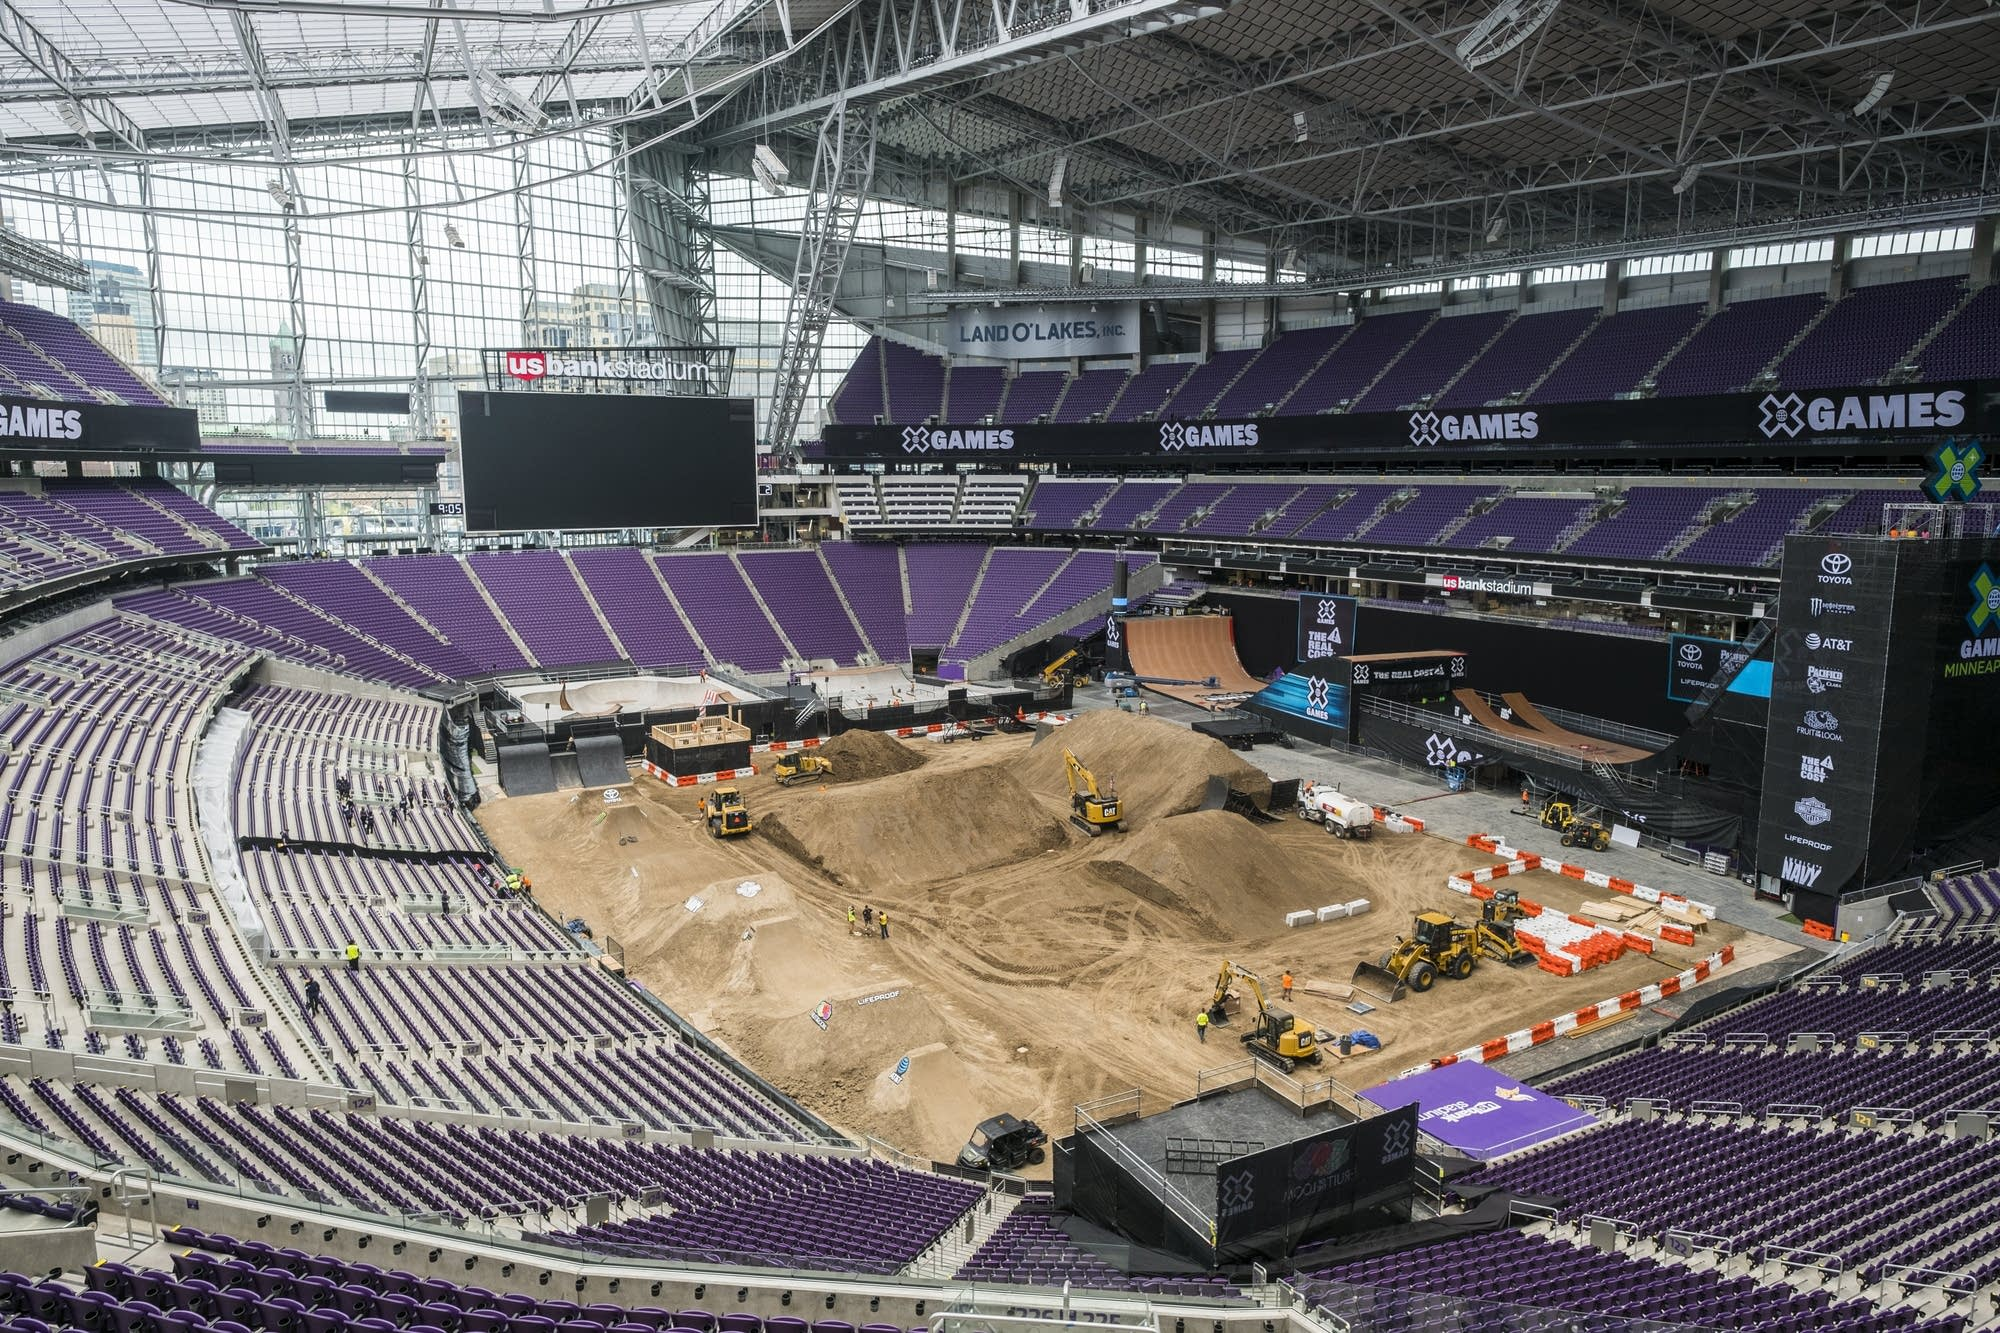 Construction continues before the X Games.